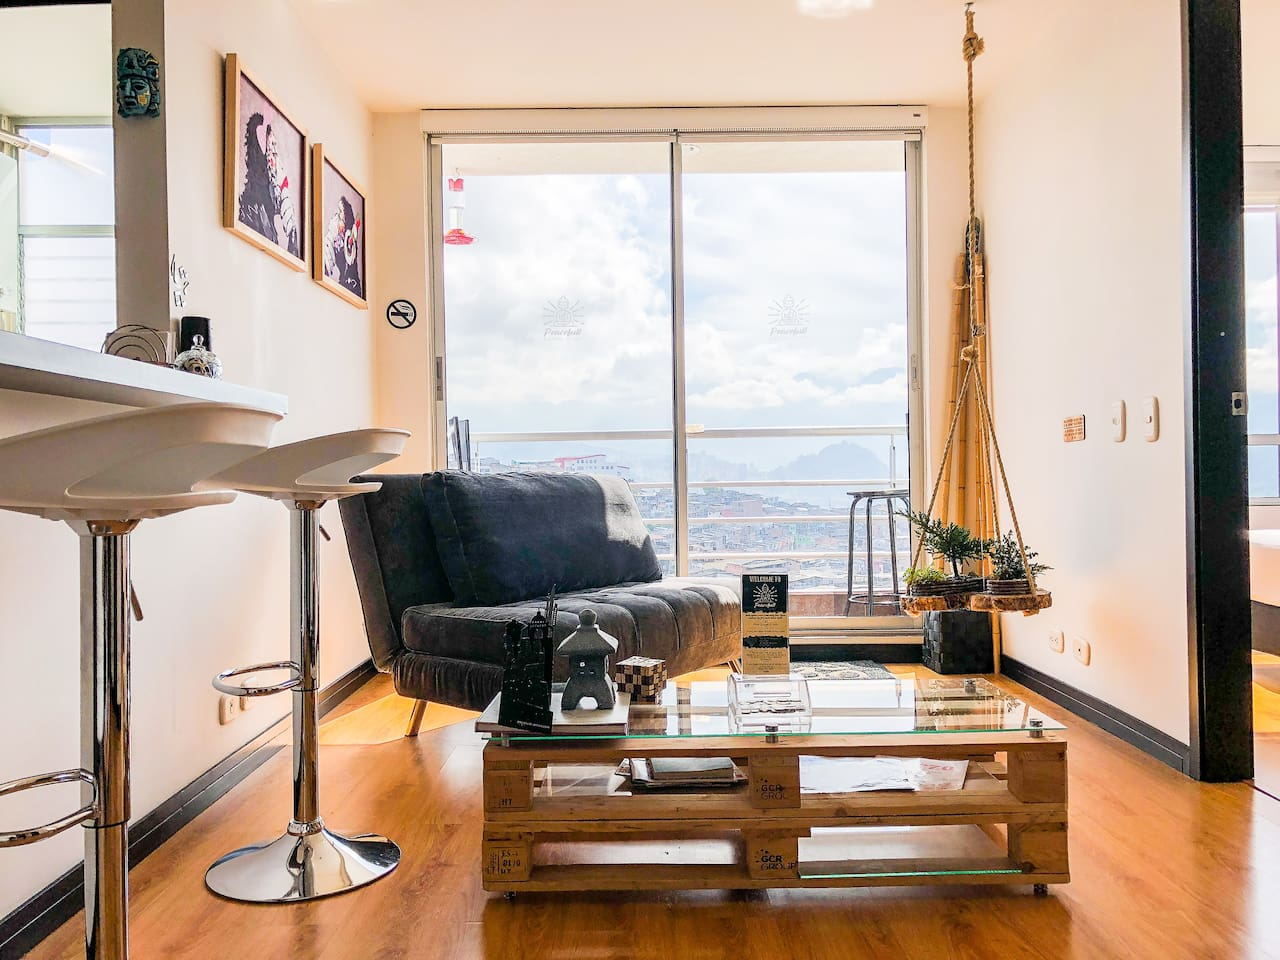 Sala, zen space, minimalistic furniture / Living Room, with colibri feeder. Amazing space with beautiful view at the downtown of the city, and mountains, enjoy the amazing dawn.